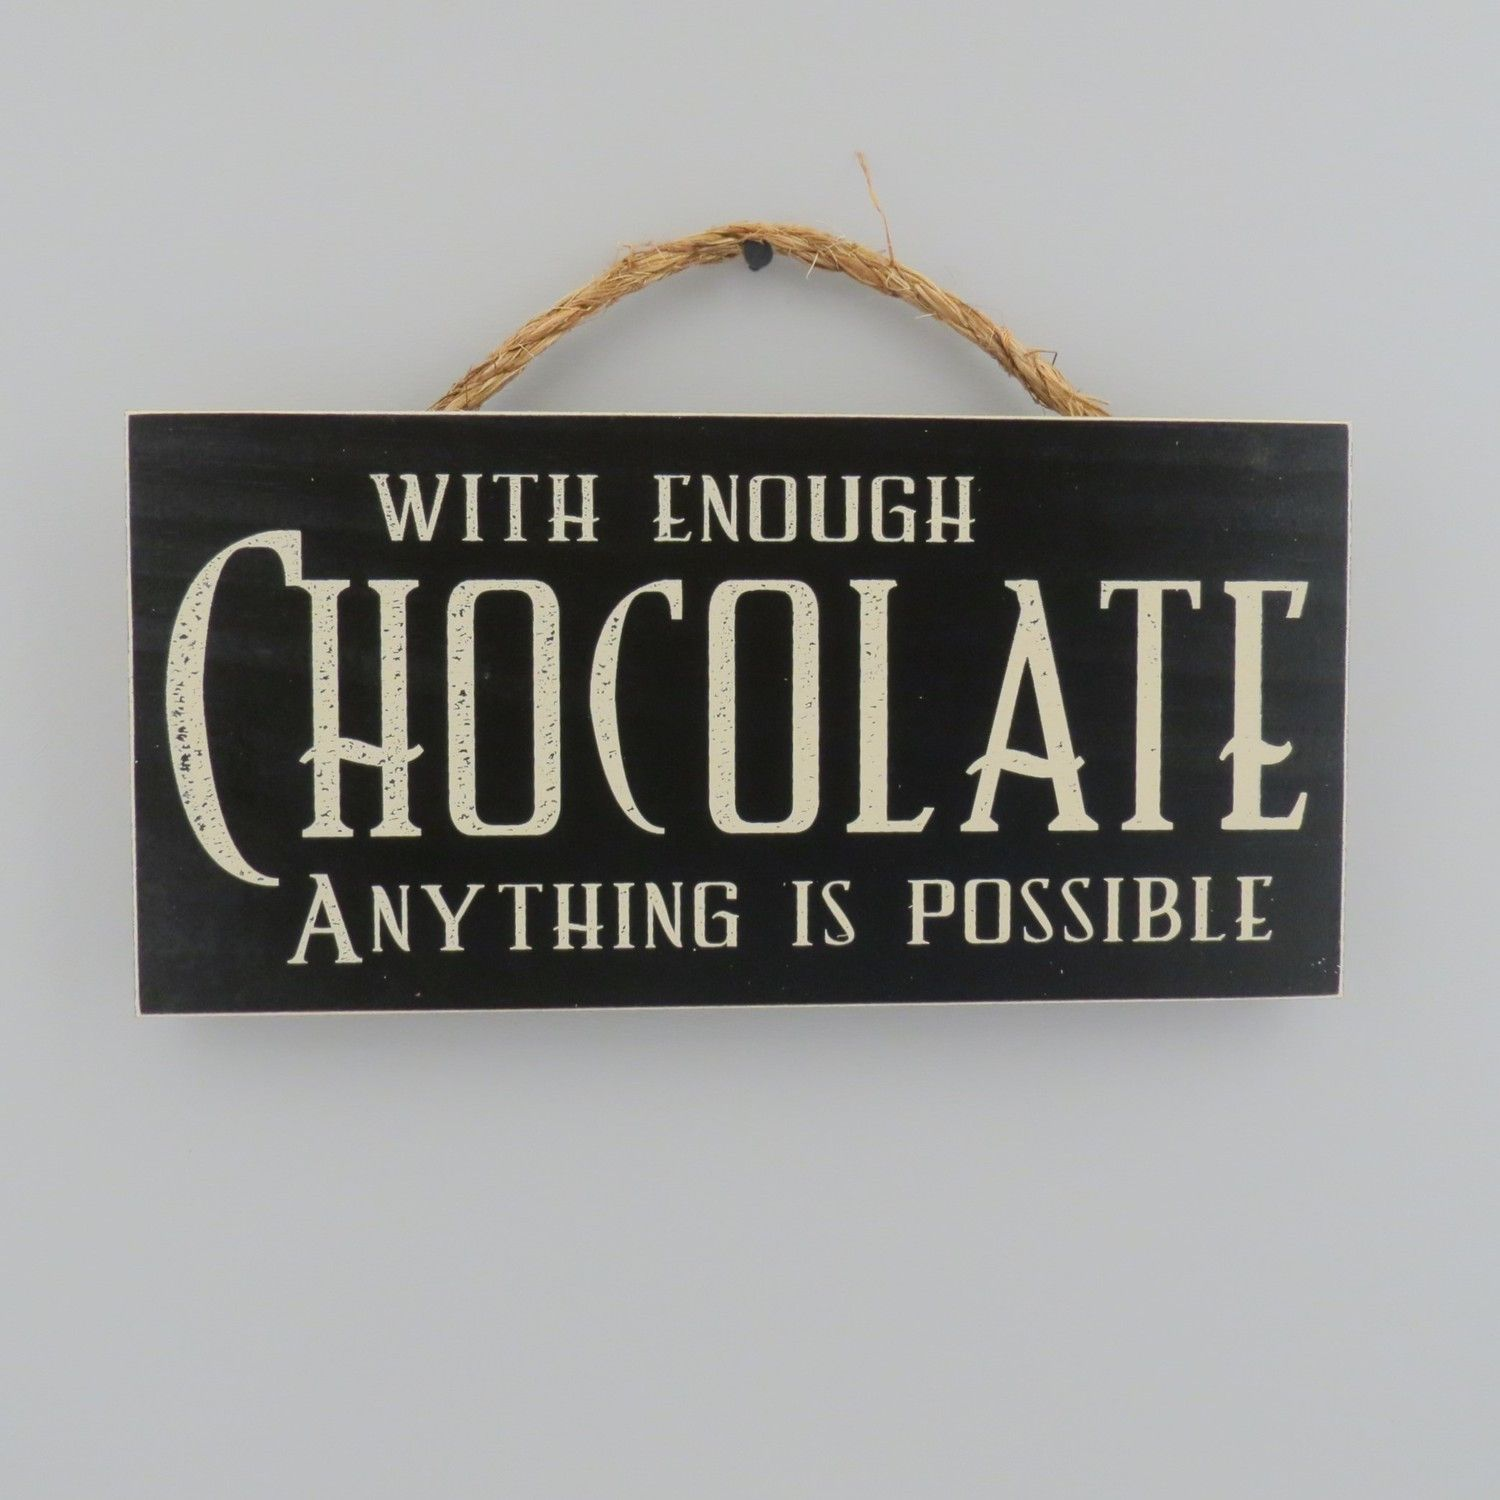 With enough chocolate anything is possible for the home